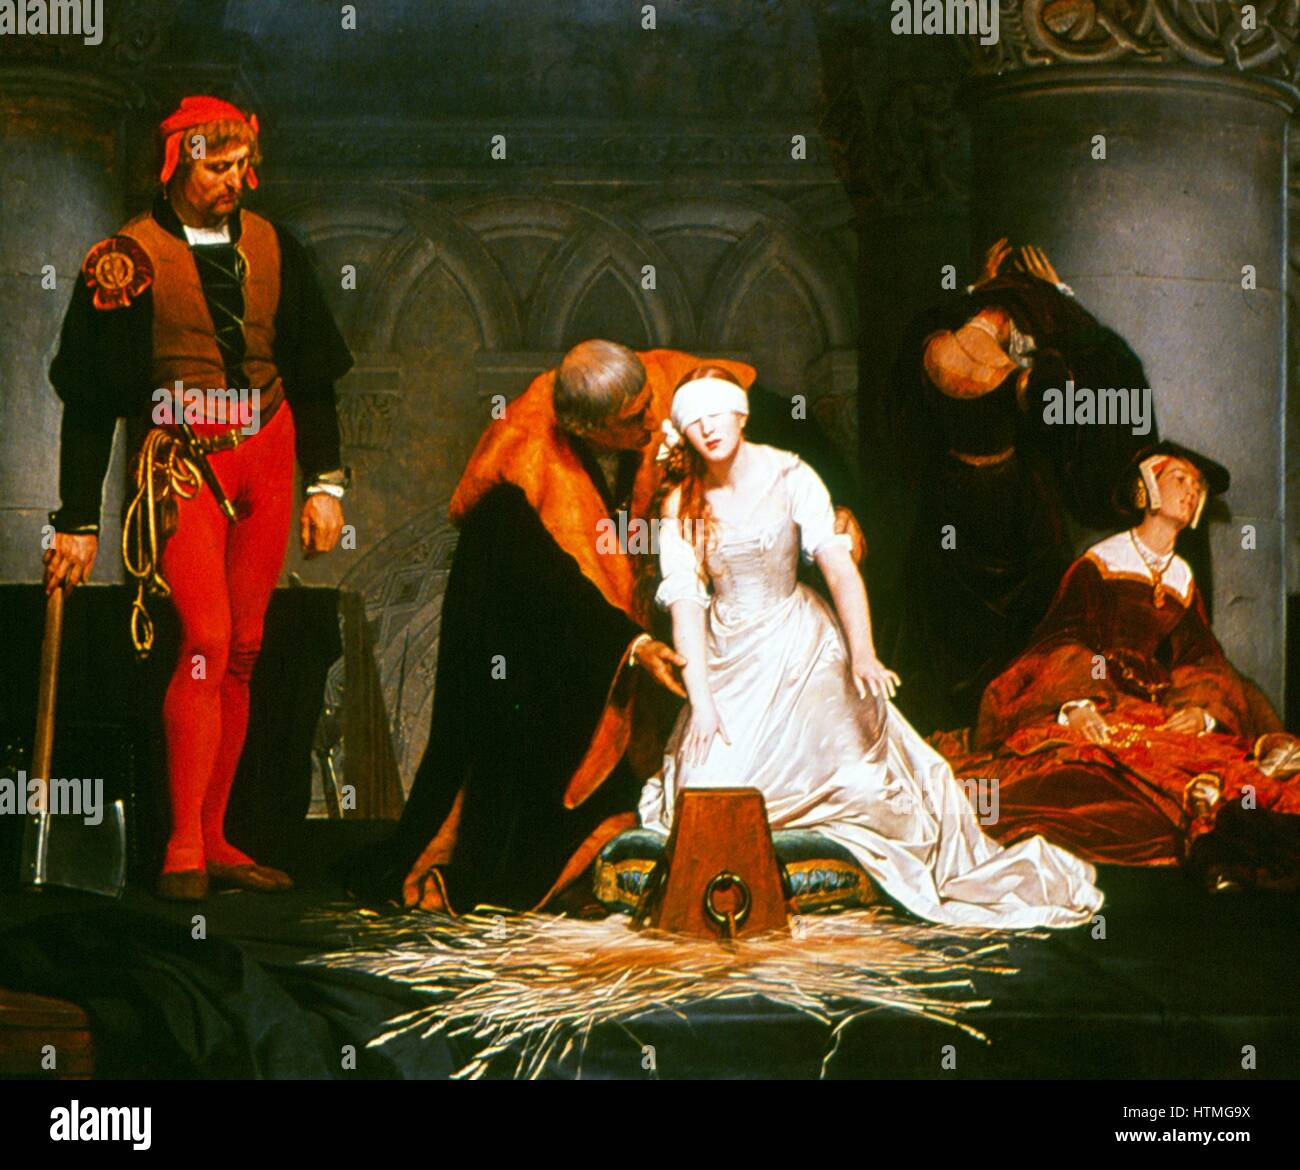 The Execution of Lady Jane Grey' (1537-1554): painting by Paul